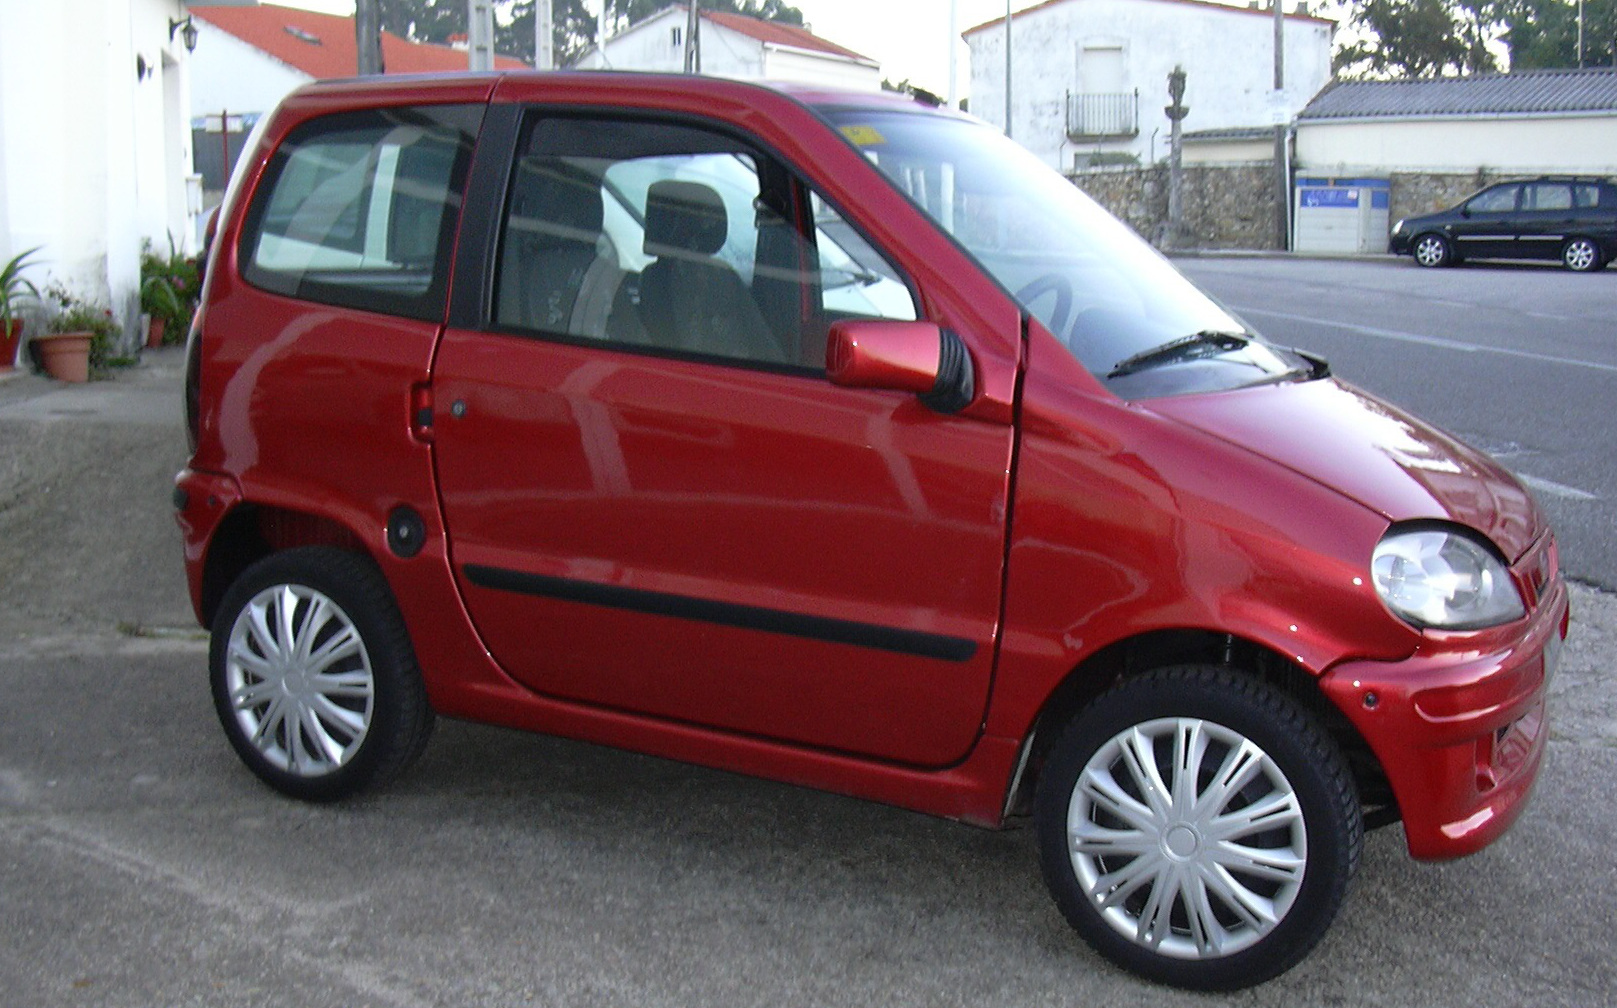 microcar Virgo Rojo (6)